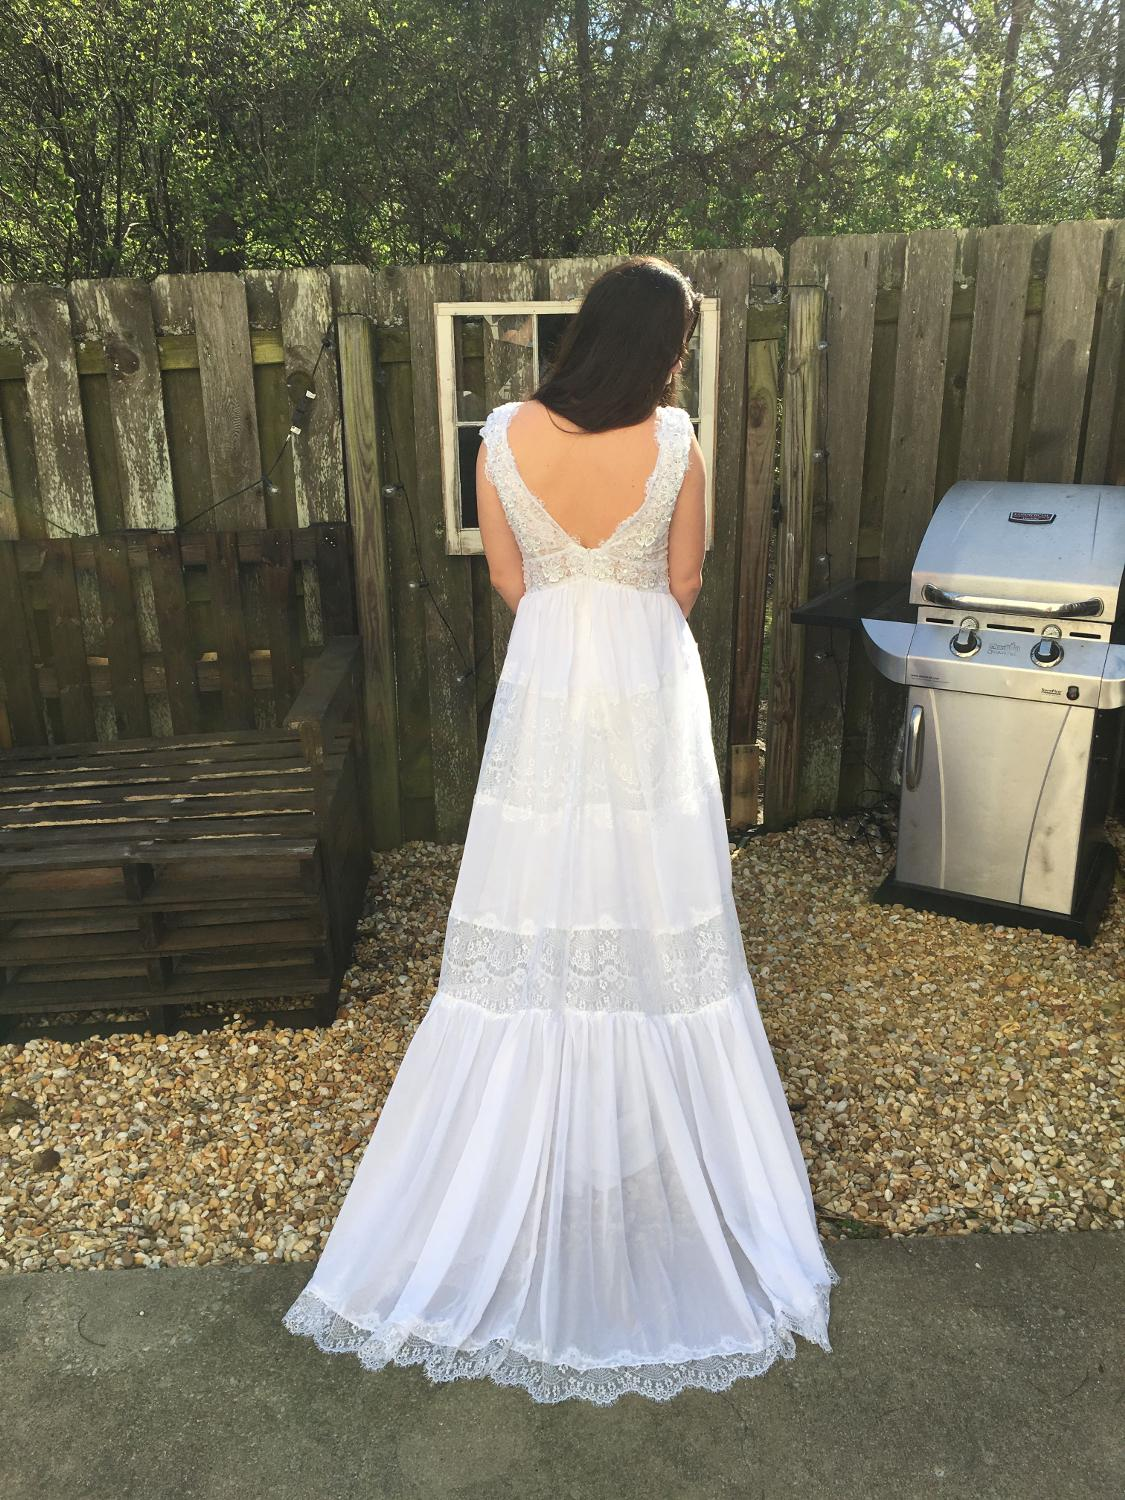 Best wedding dress for sale in spring hill tennessee for 2018 for Wedding dress shops in murfreesboro tn